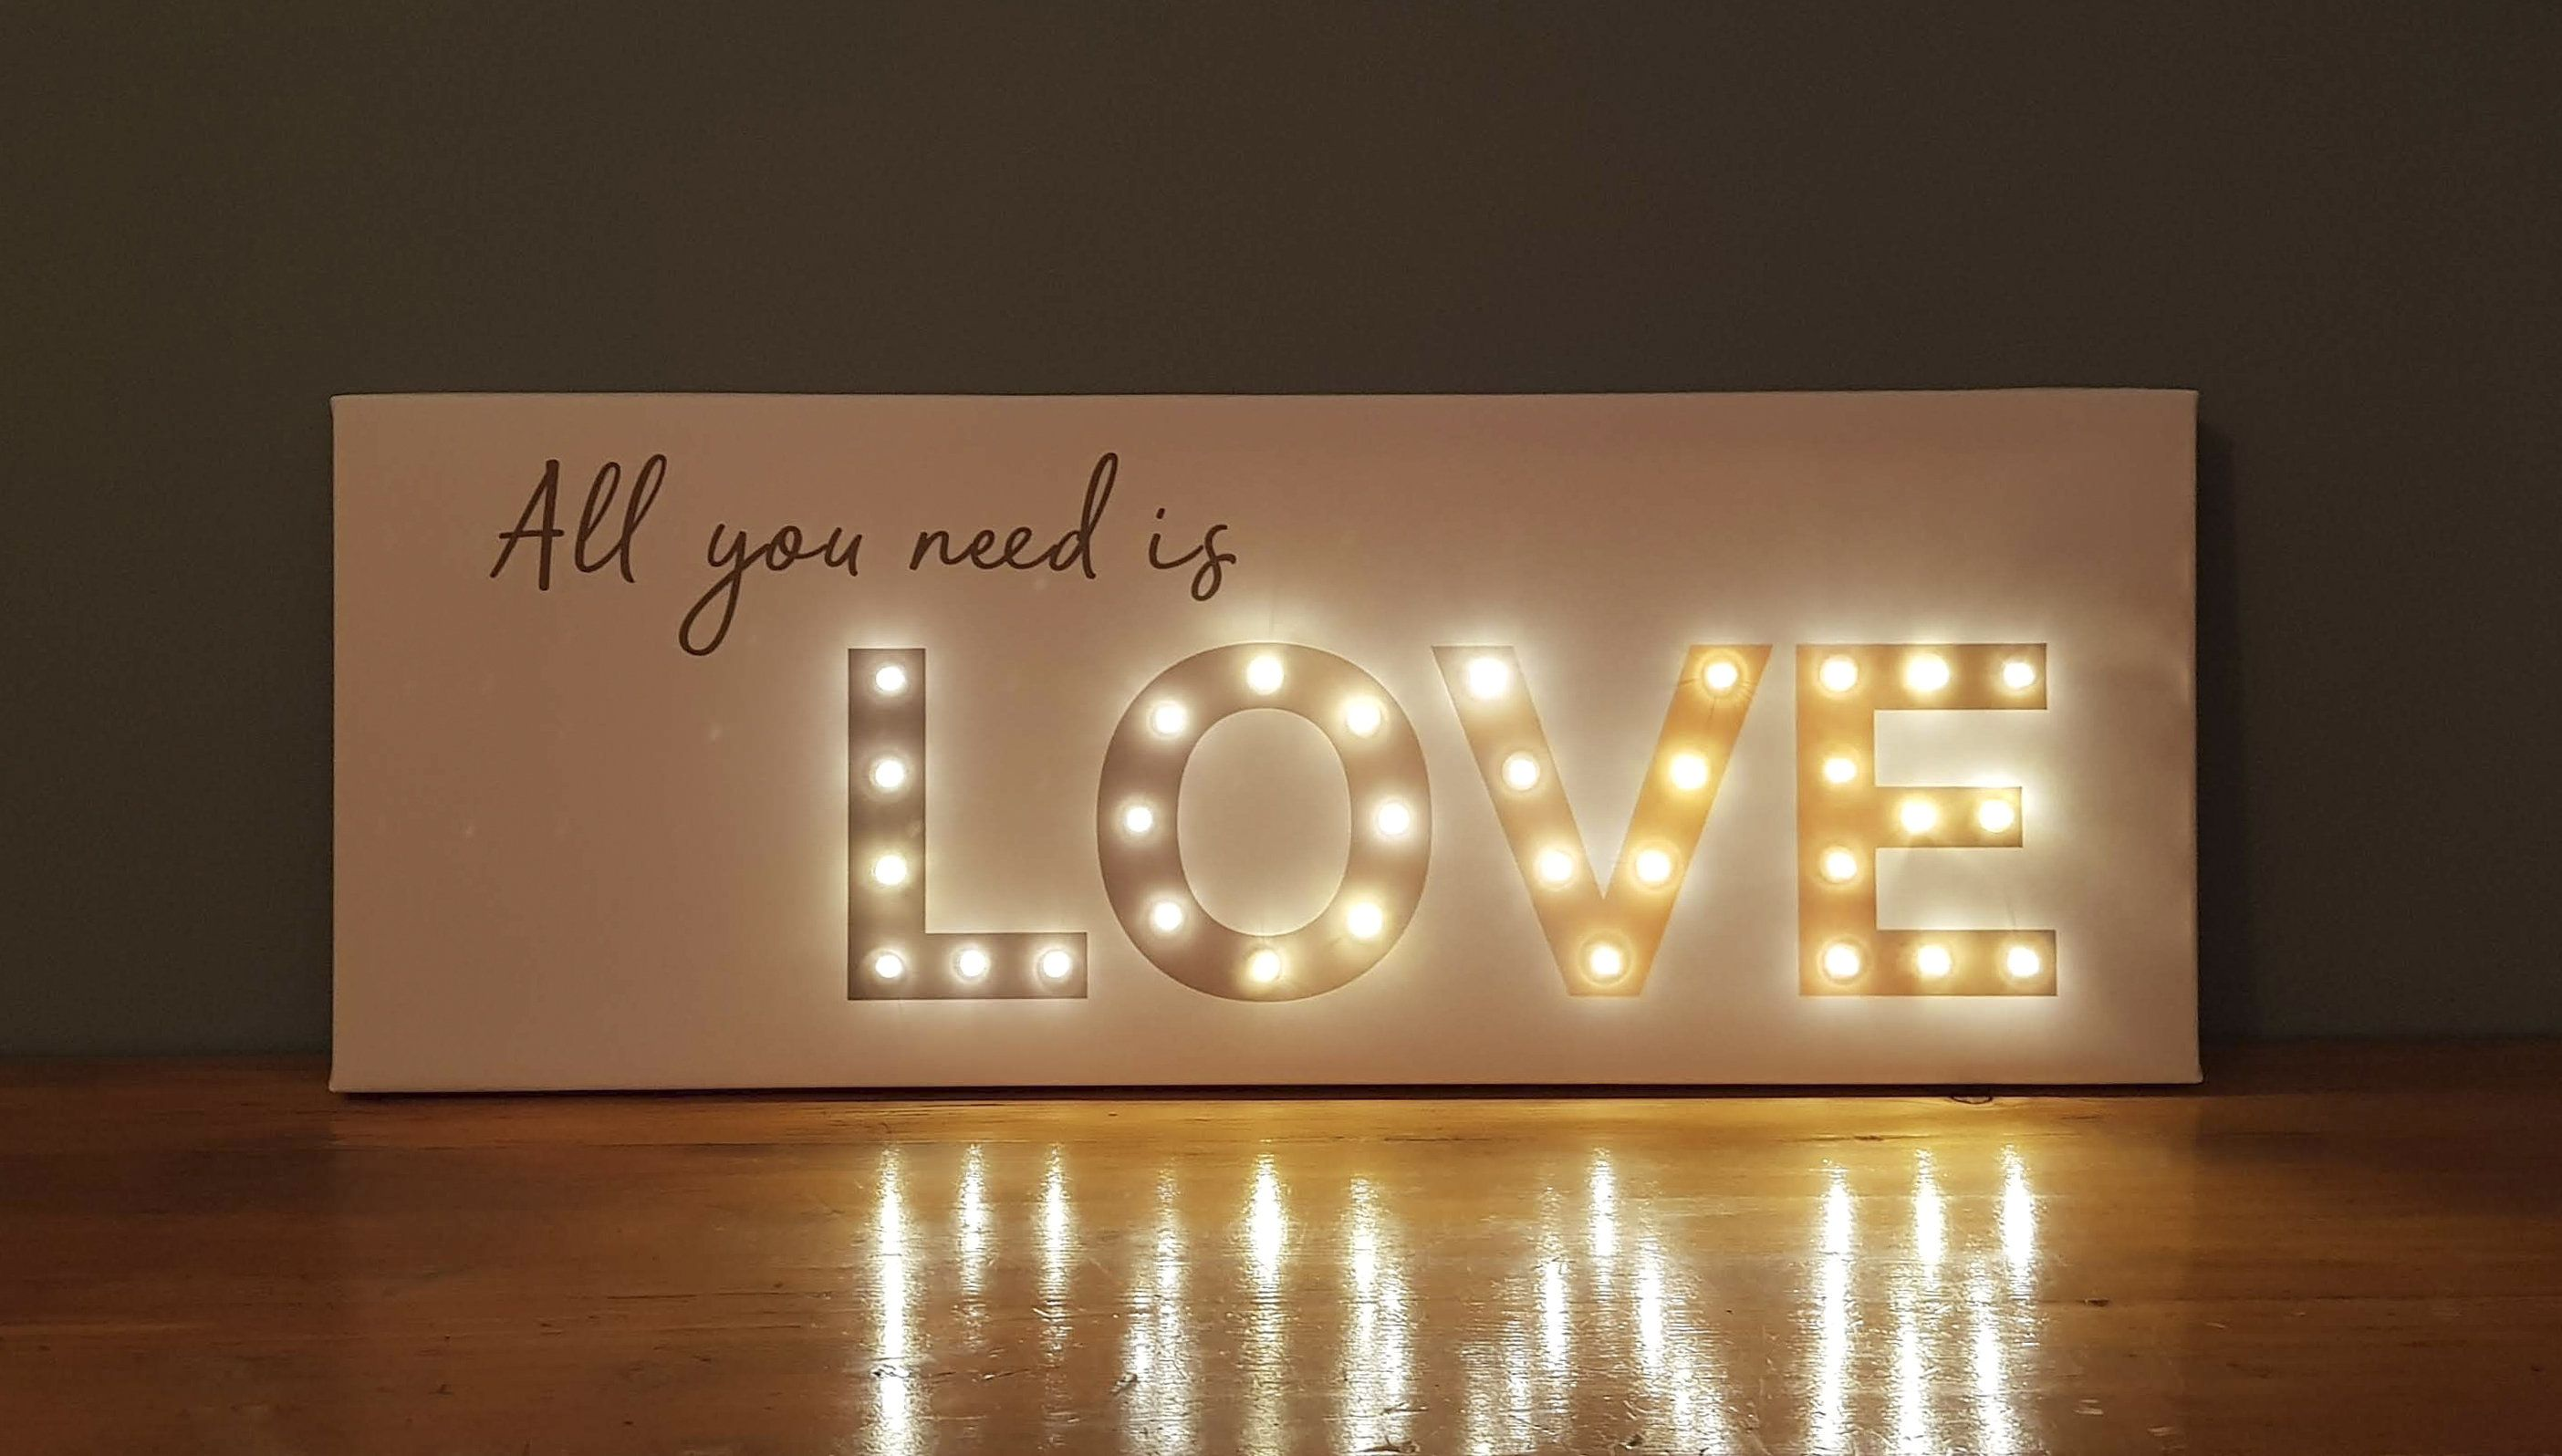 Light Up Love All You Need Is Love Sign Battery Operated Etsy In 2020 Love Signs Light Up Letters Light Up Signs